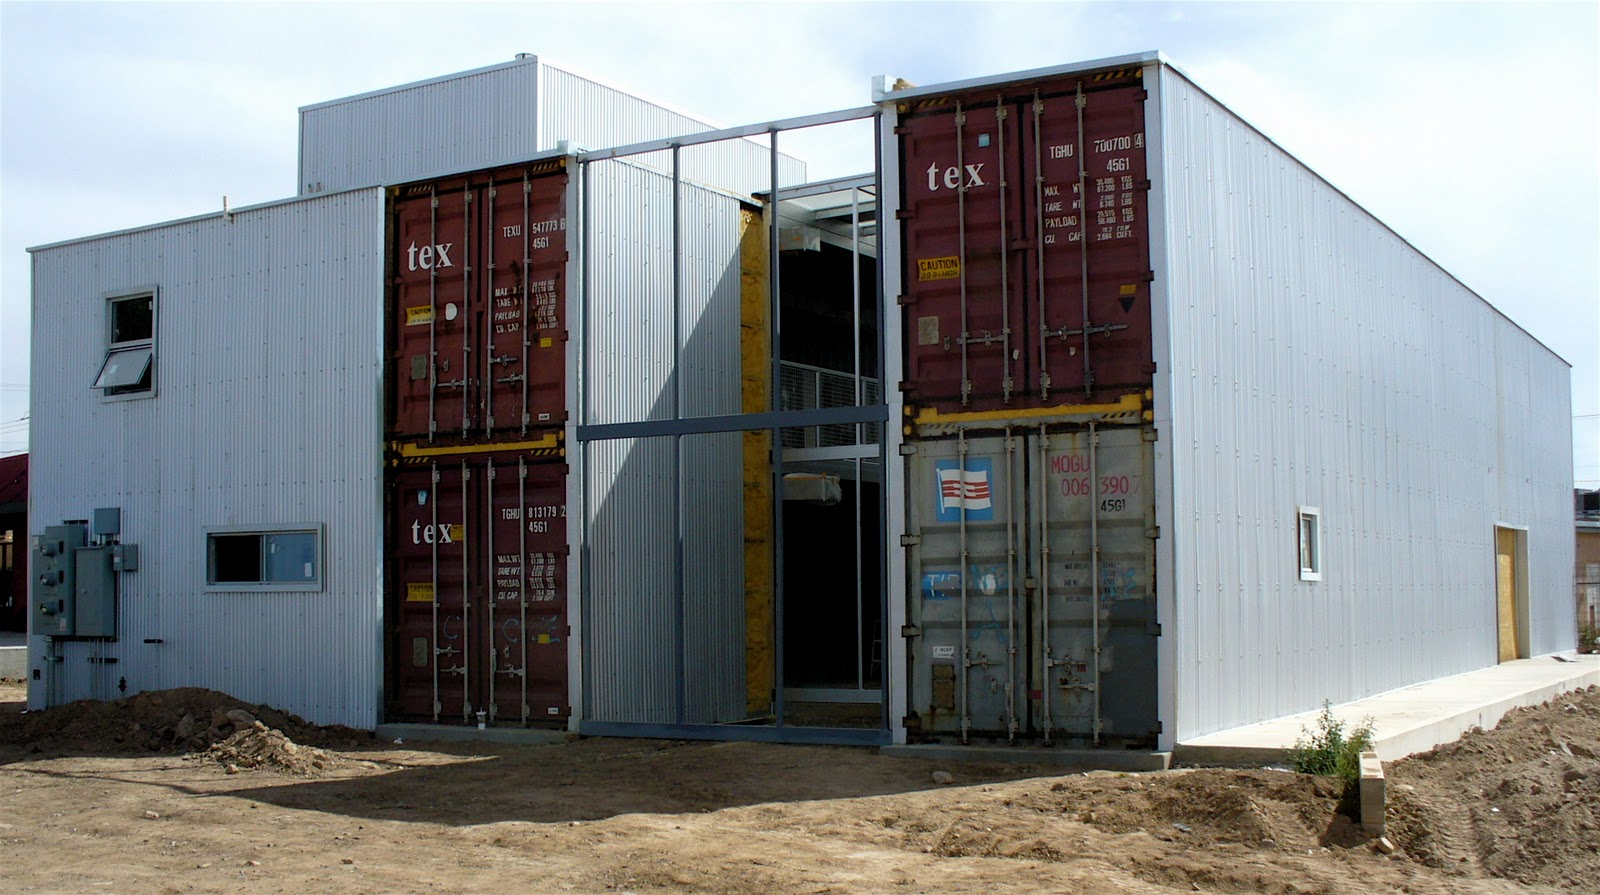 Alt build blog more on shipping container building - How to make a home from shipping containers in new ...